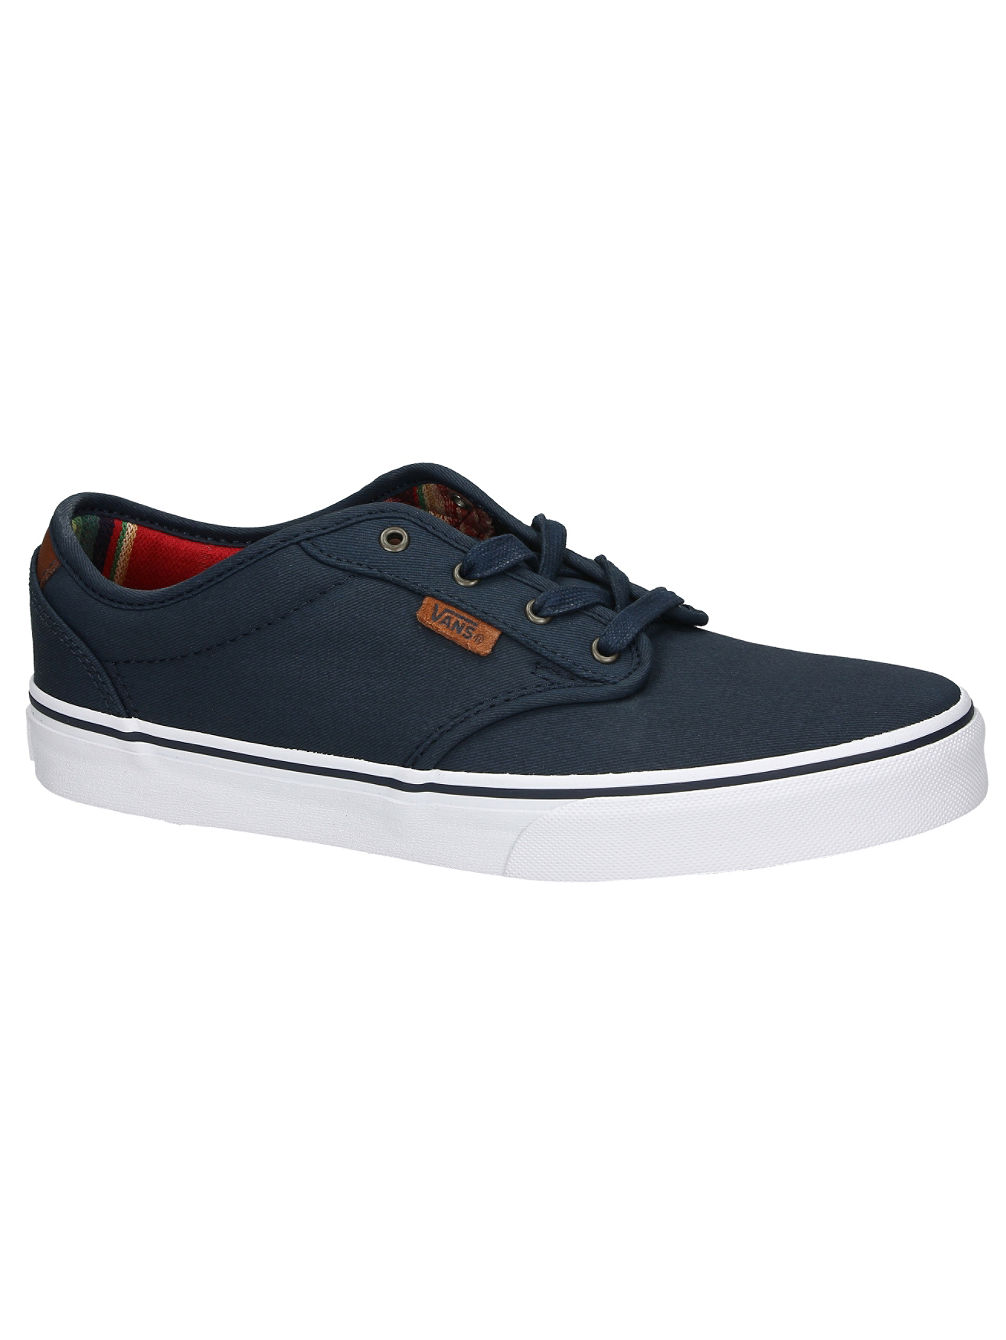 Atwood Dx Sneakers Boys